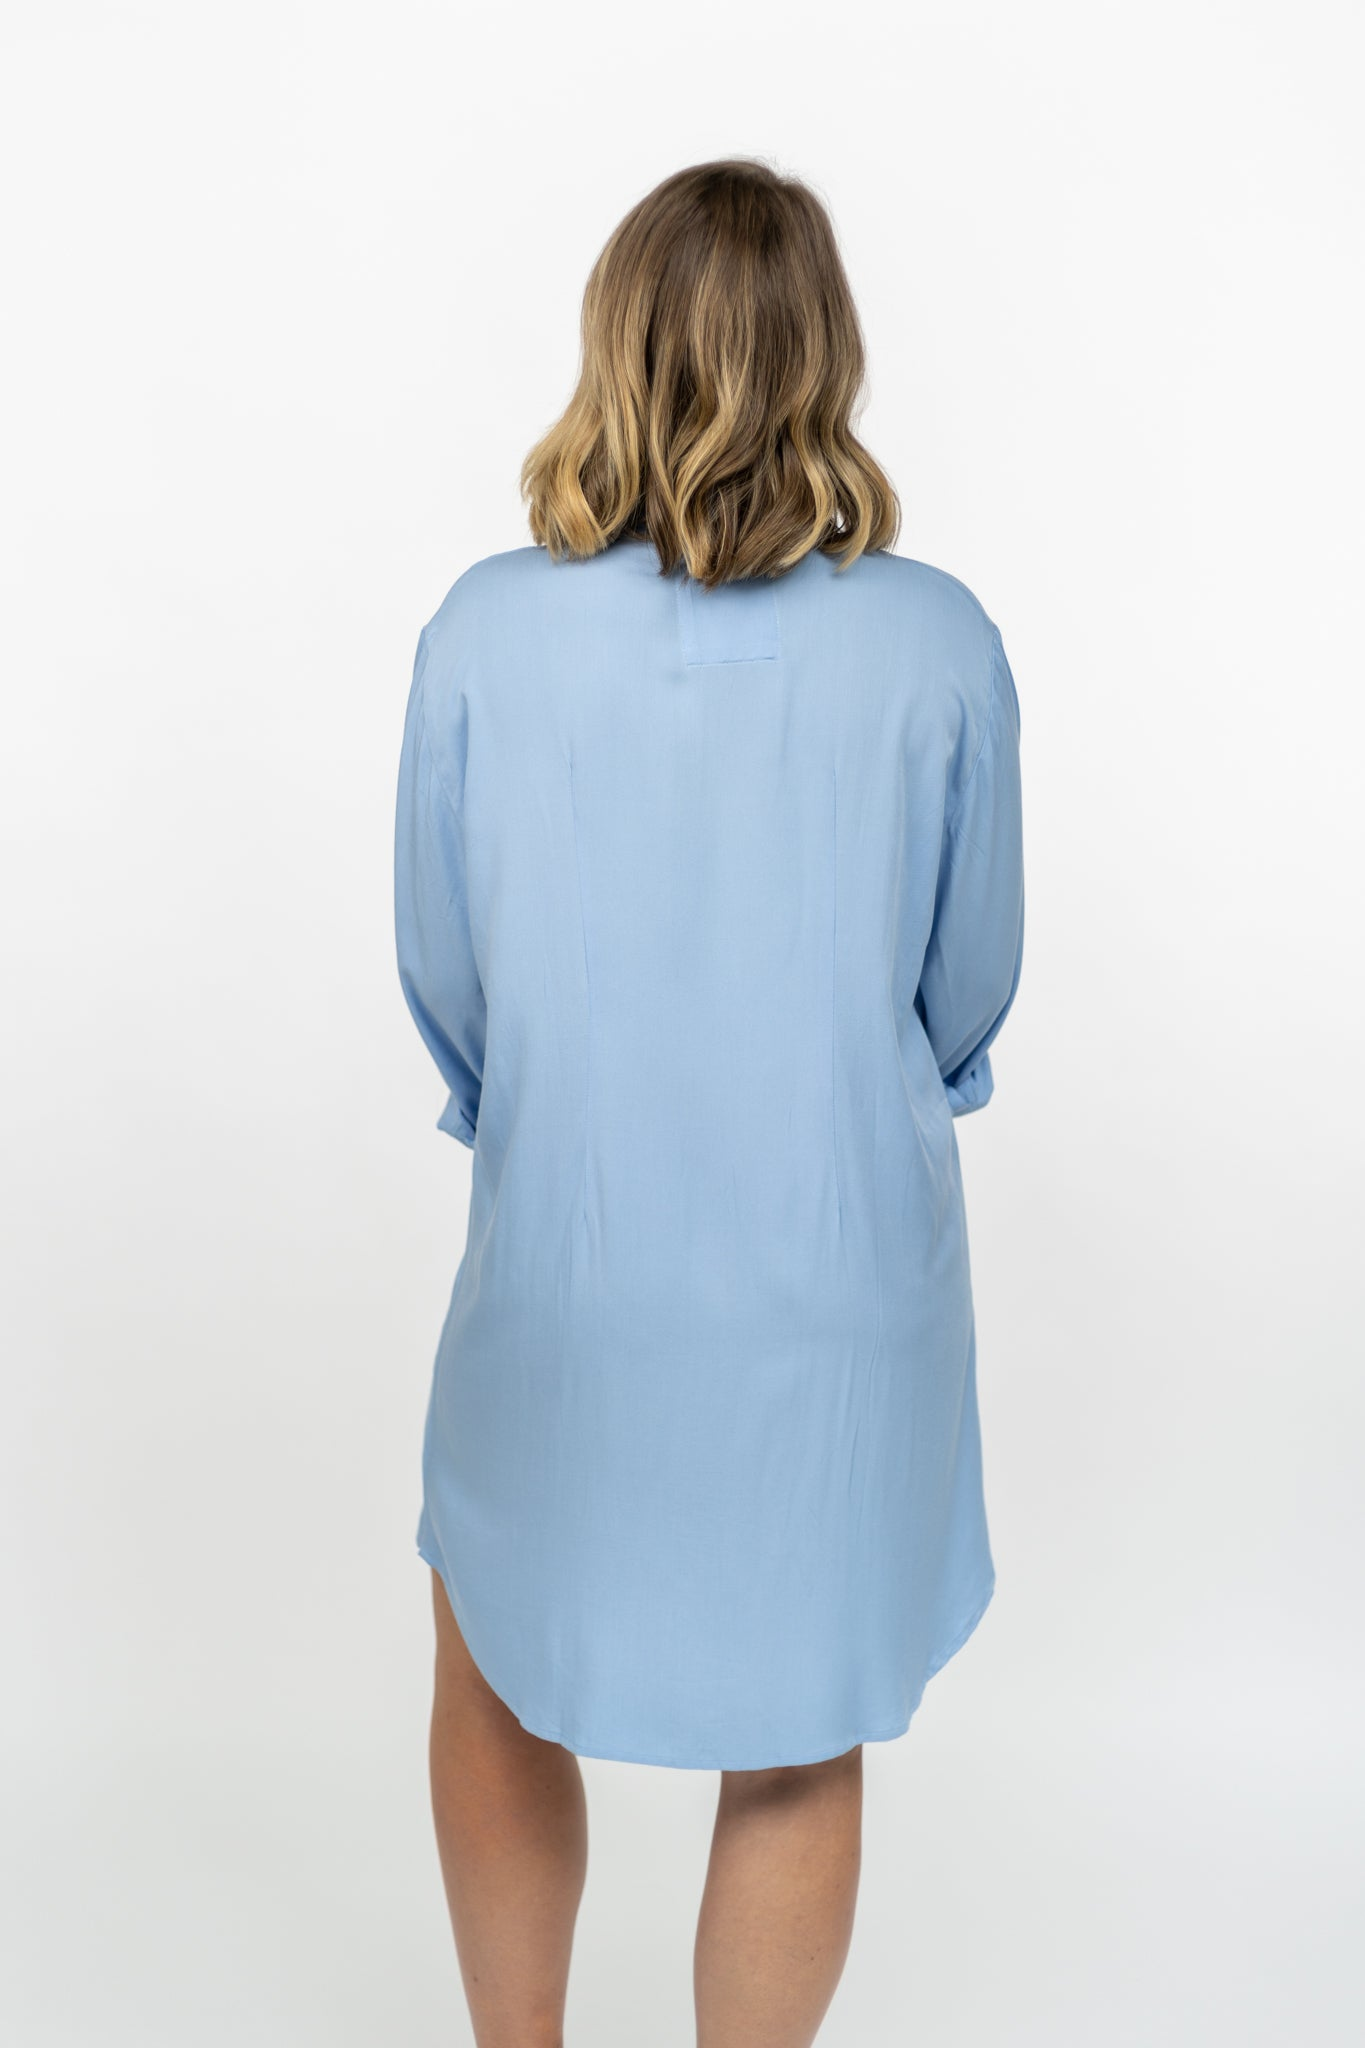 La chemise Mary / The Mary Shirt - Bleu ardoise / Slate blue